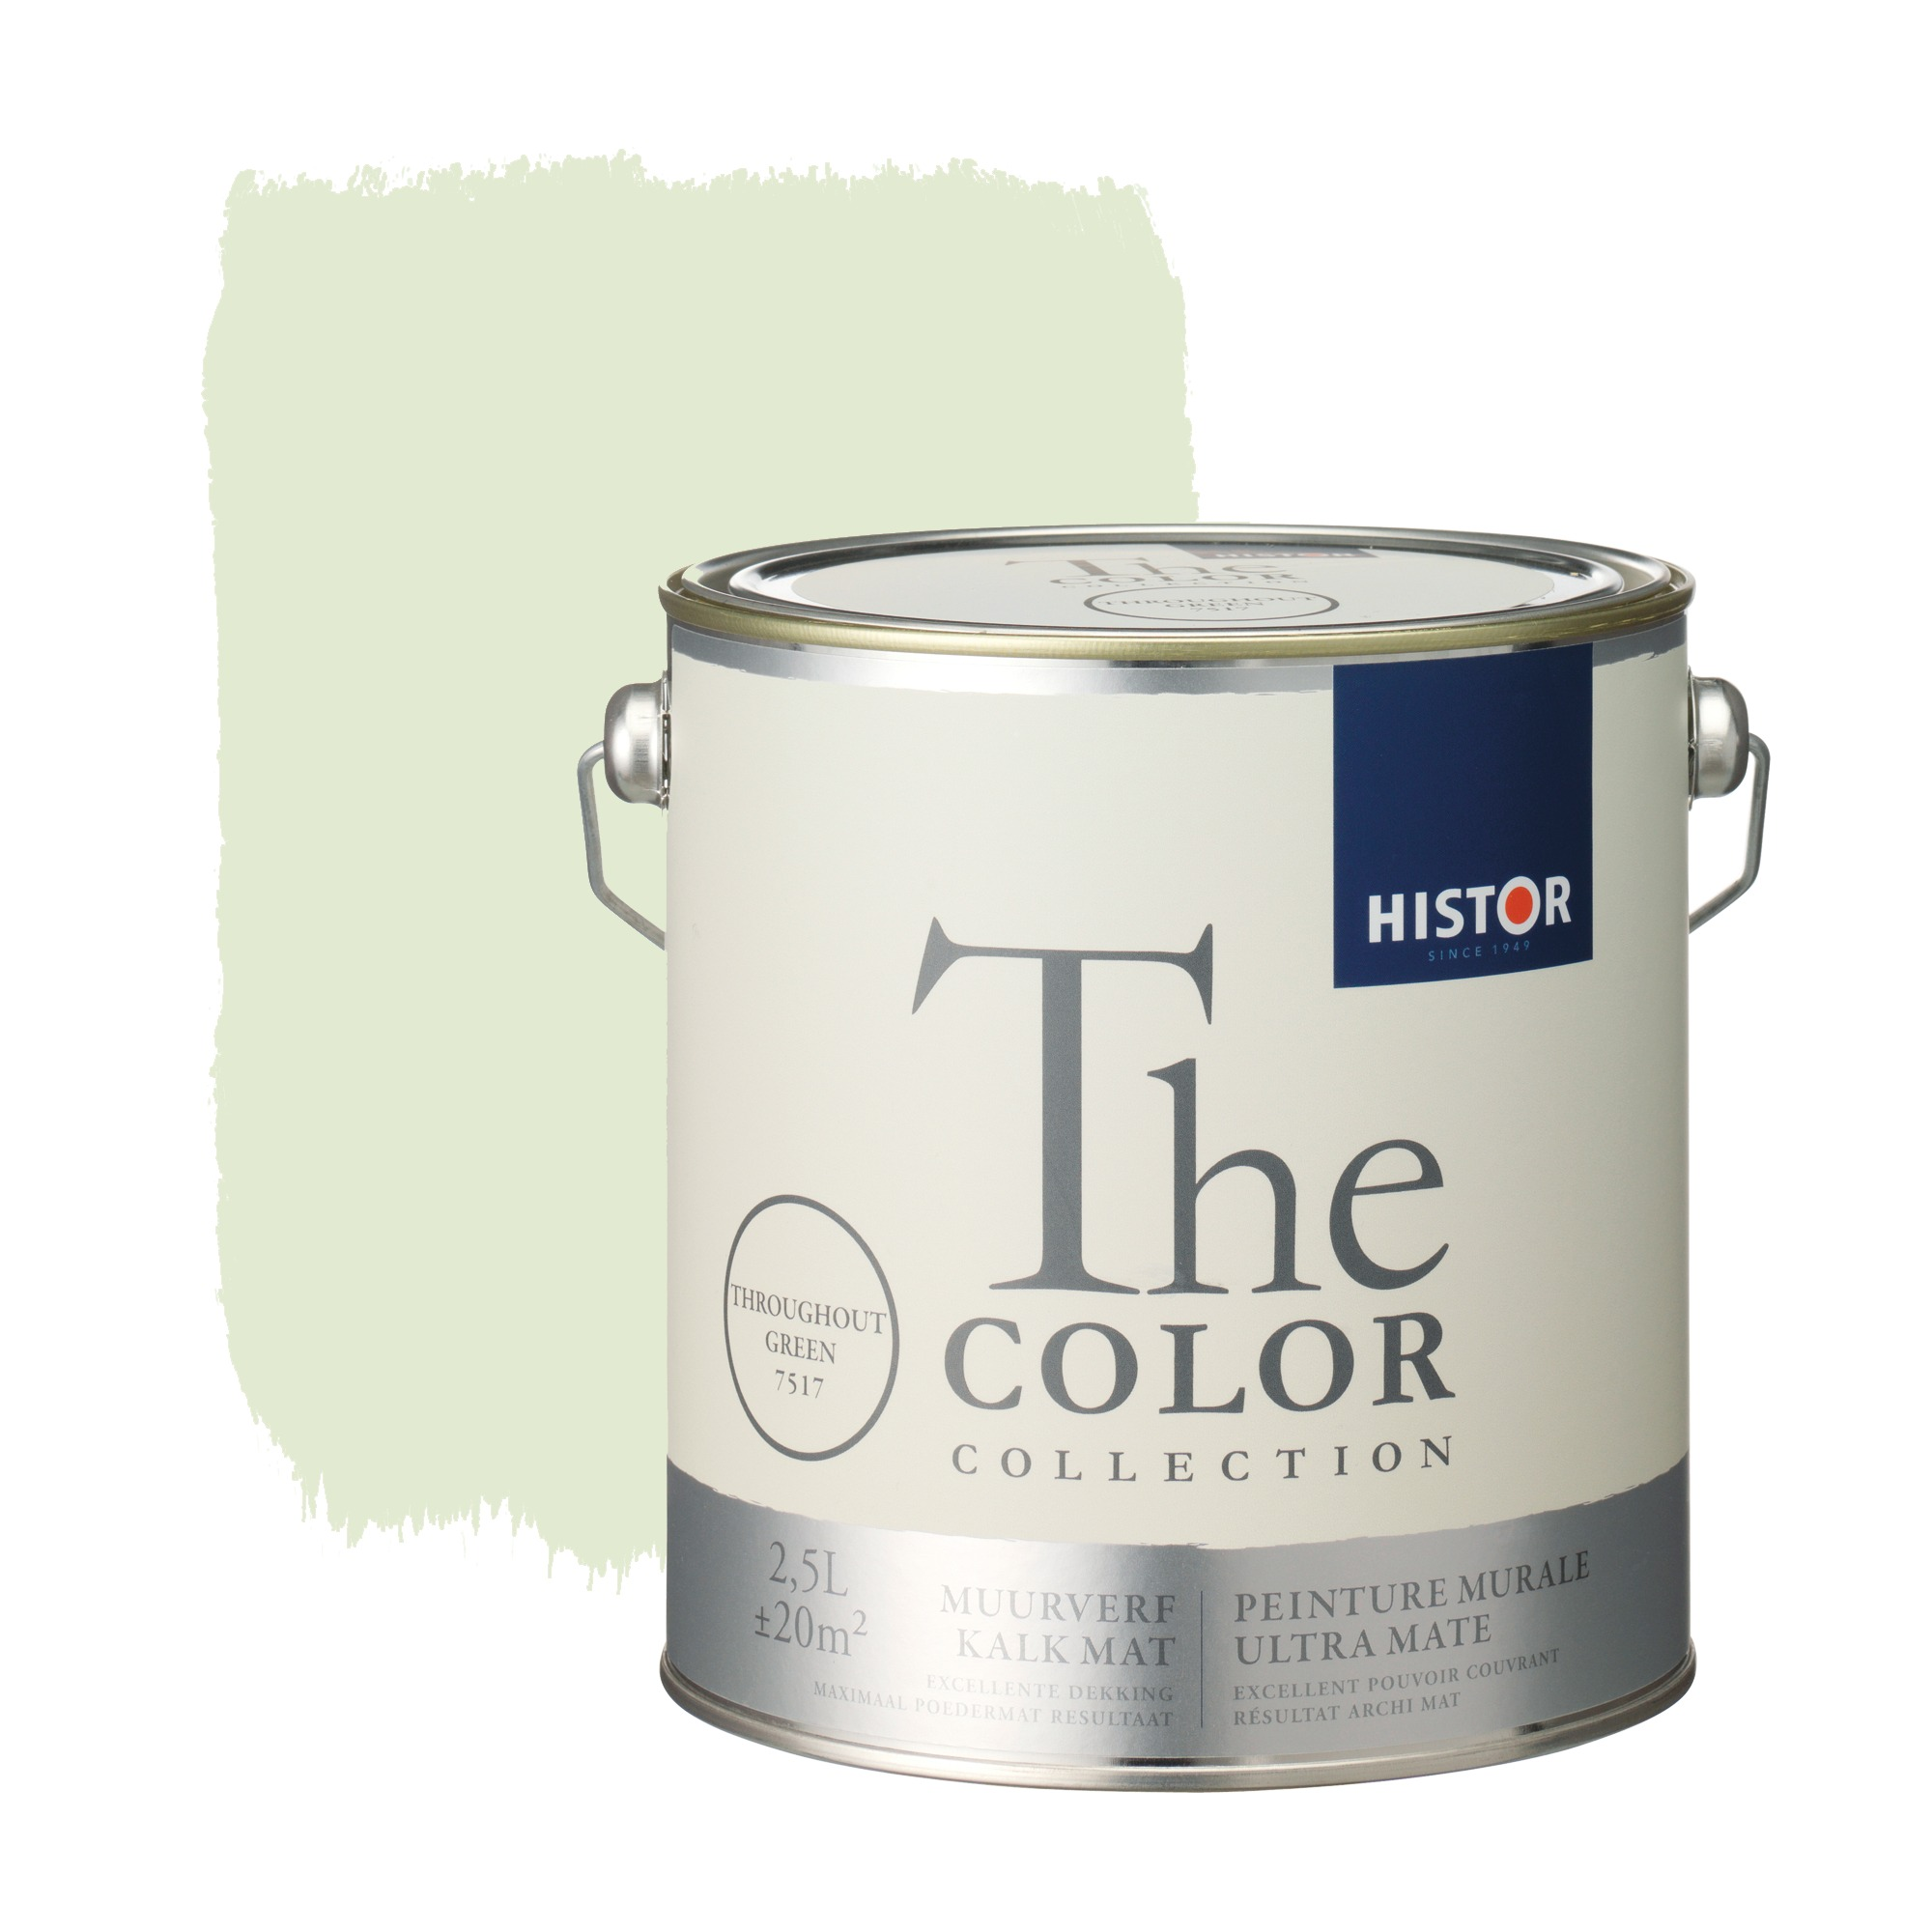 Histor the color collection muurverf kalkmat throughout green 7517 2,5 l